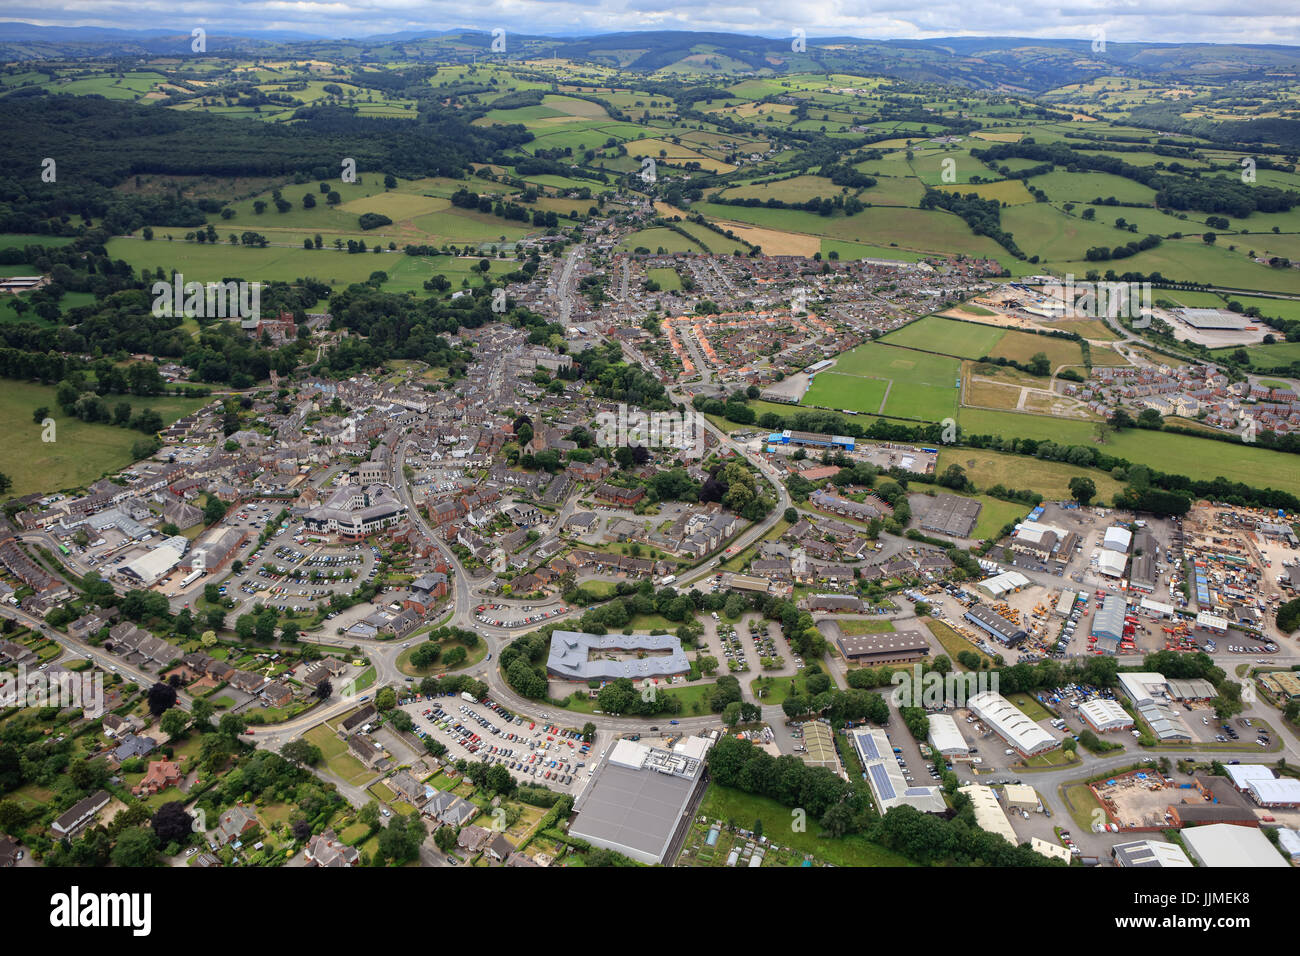 An aerial view of Ruthin, the county town of Denbighshire in Wales - Stock Image